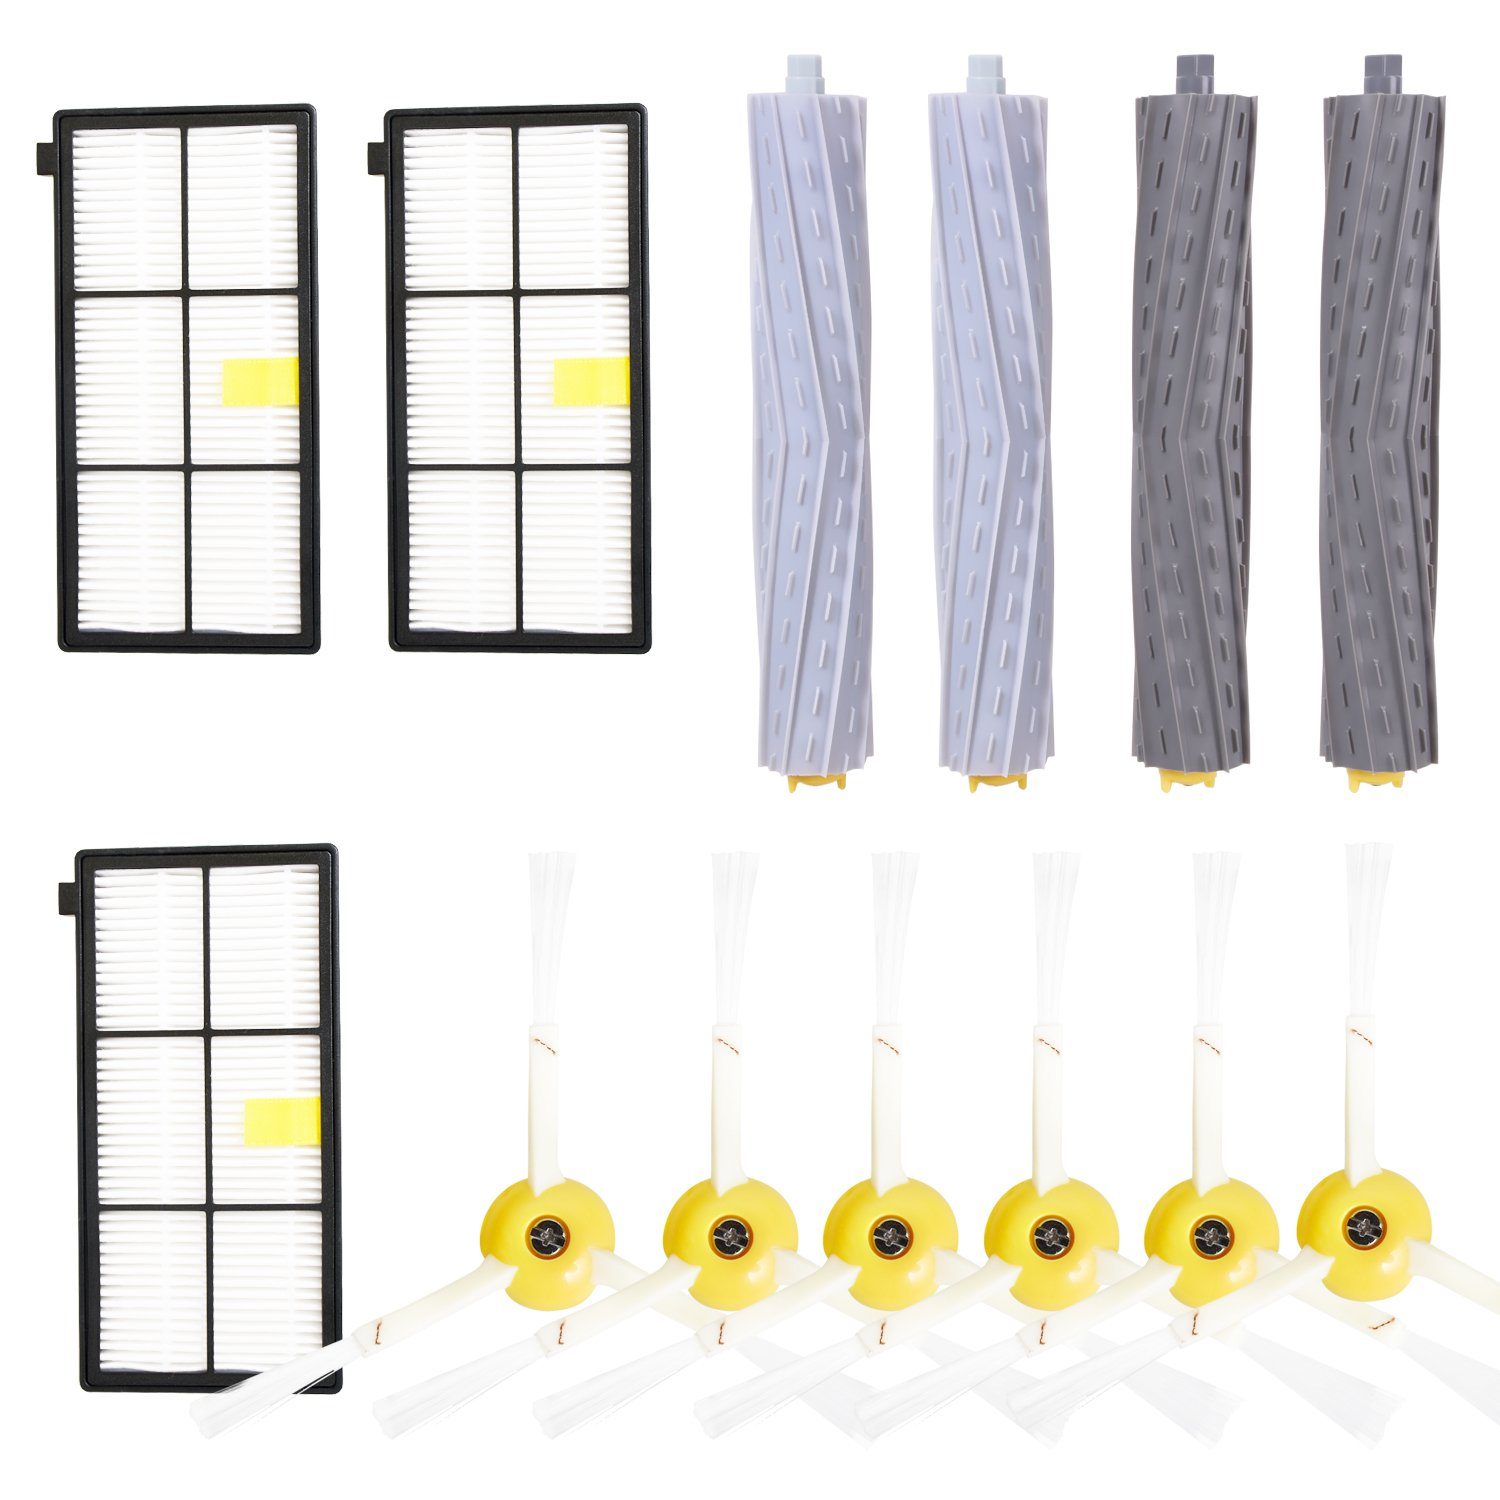 YOMEKOLY Accessories Kit for iRobot Roomba 800 900 Series 805 850 860 861 864 866 870 871 880 885 890 960 966 980 990 Replacement Parts Replenishment iRobot Set Hepa Filter Side Brush Roller